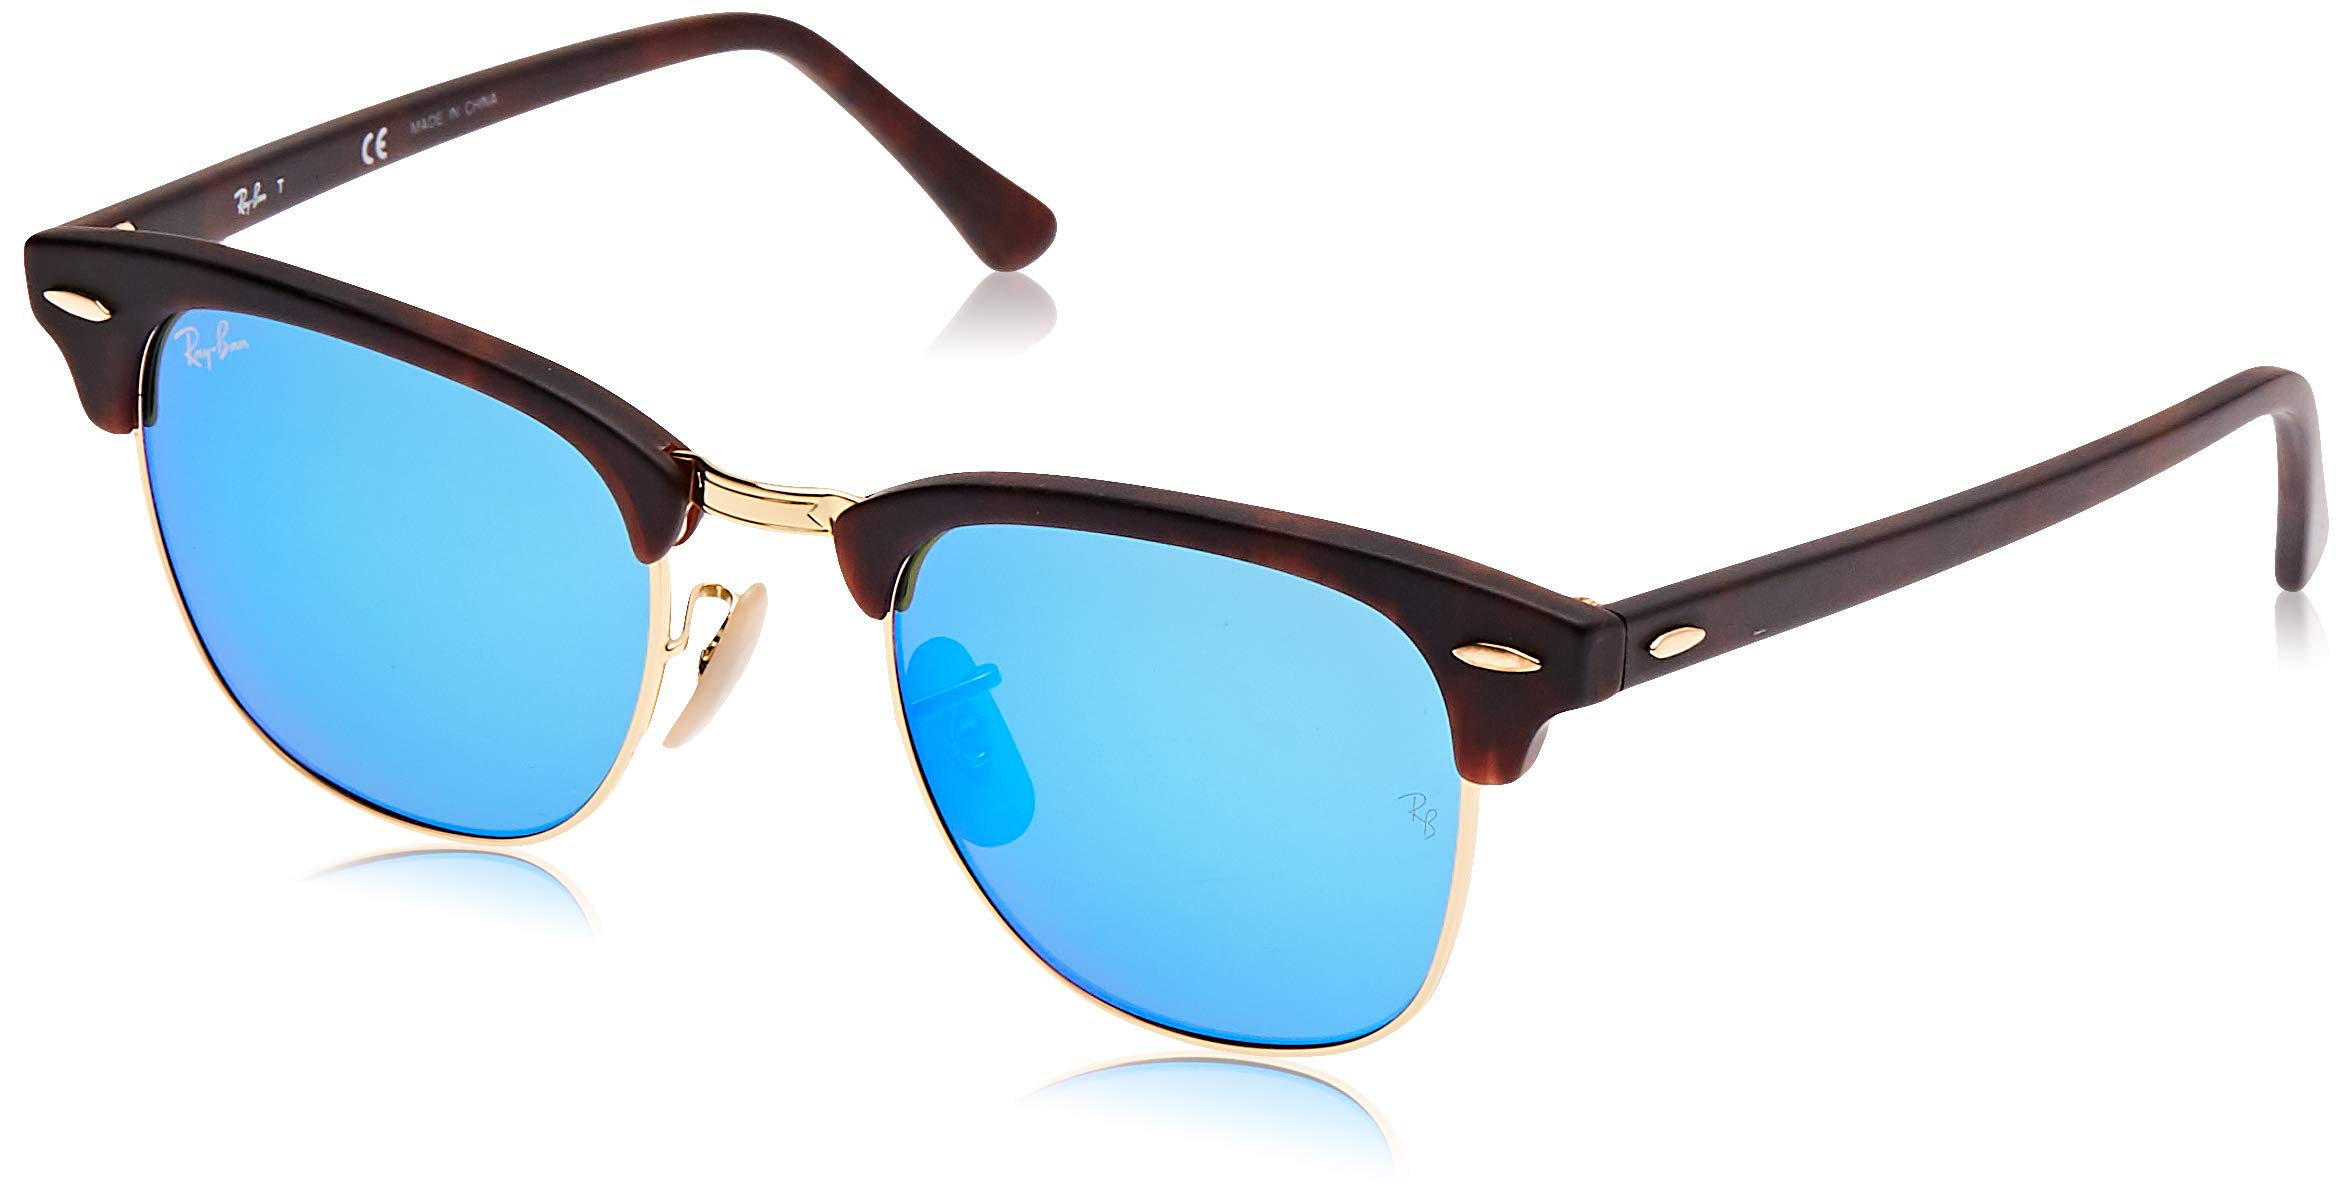 RAY-BAN RB3016 Clubmaster Square Sunglasses, Tortoise & Gold/Blue Flash, 49 mm by RAY-BAN